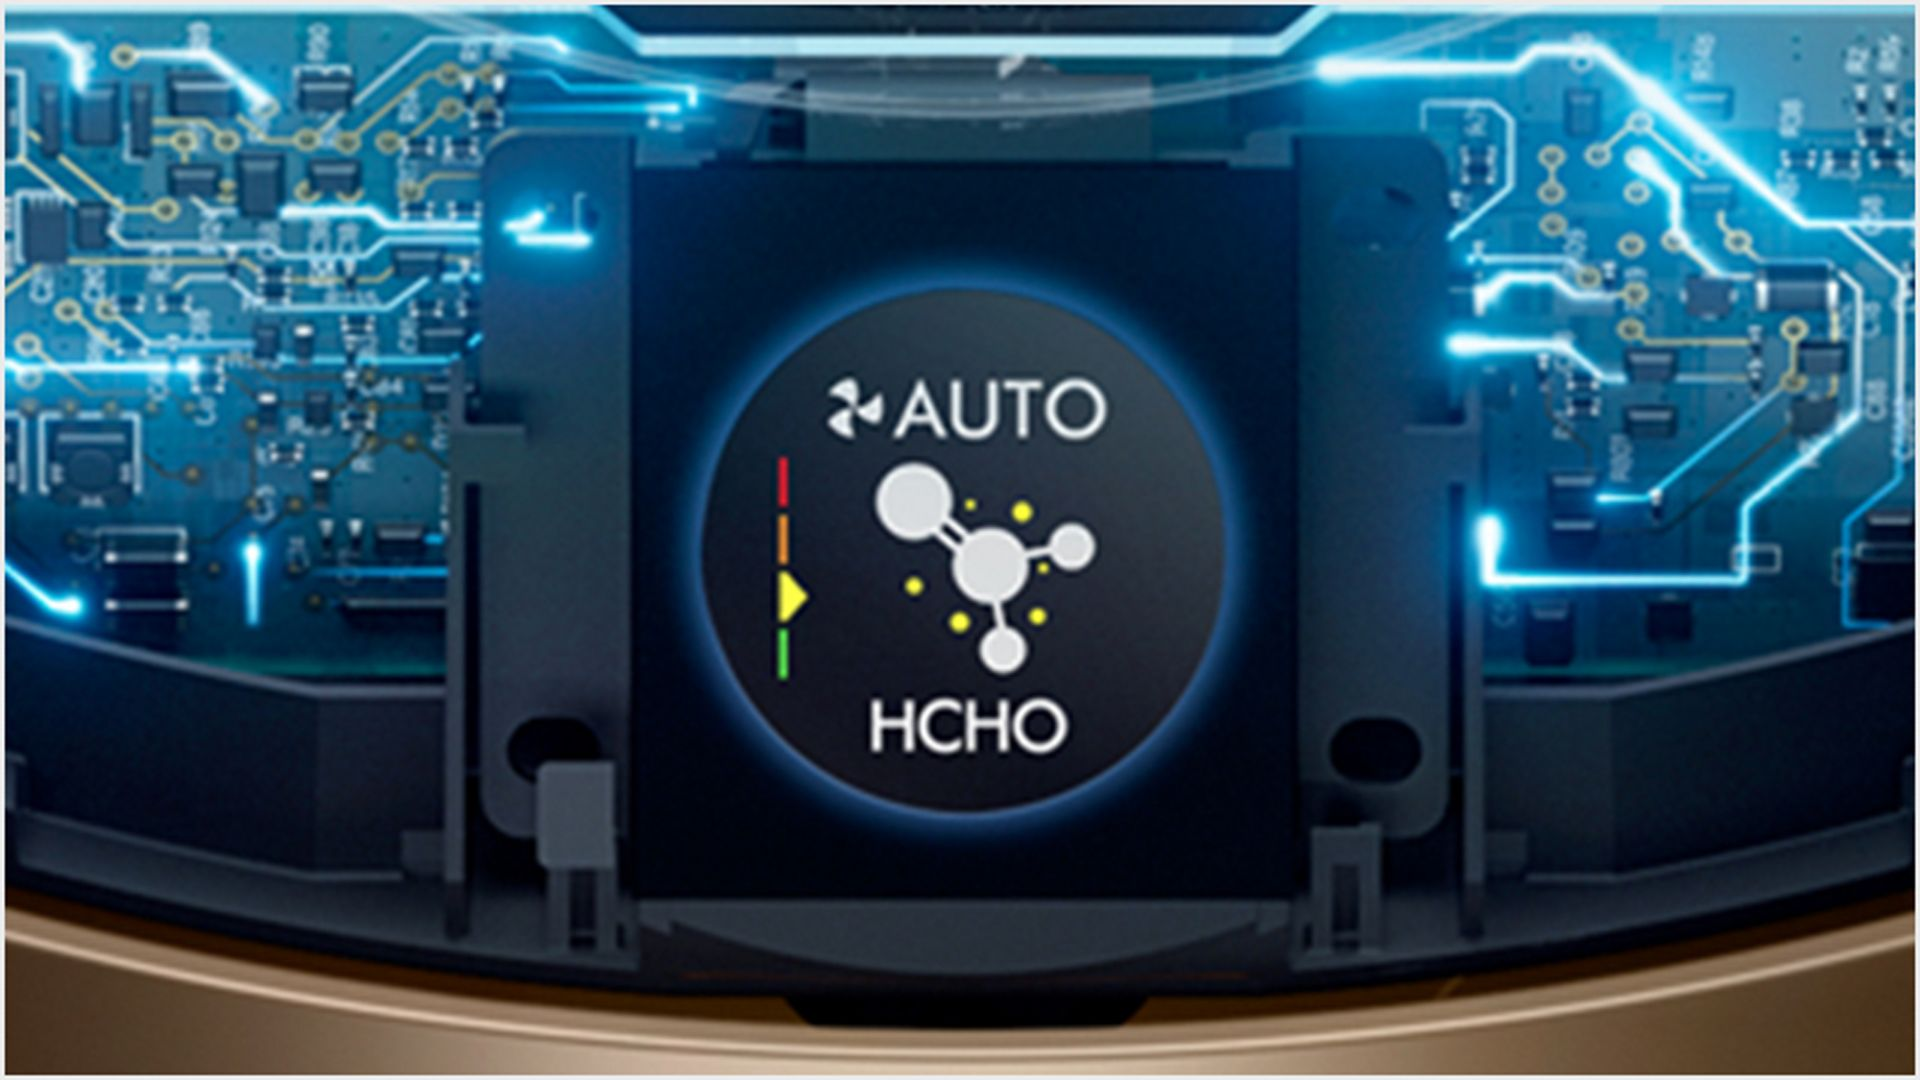 Internal sensing technology and LCD screen showing air quality